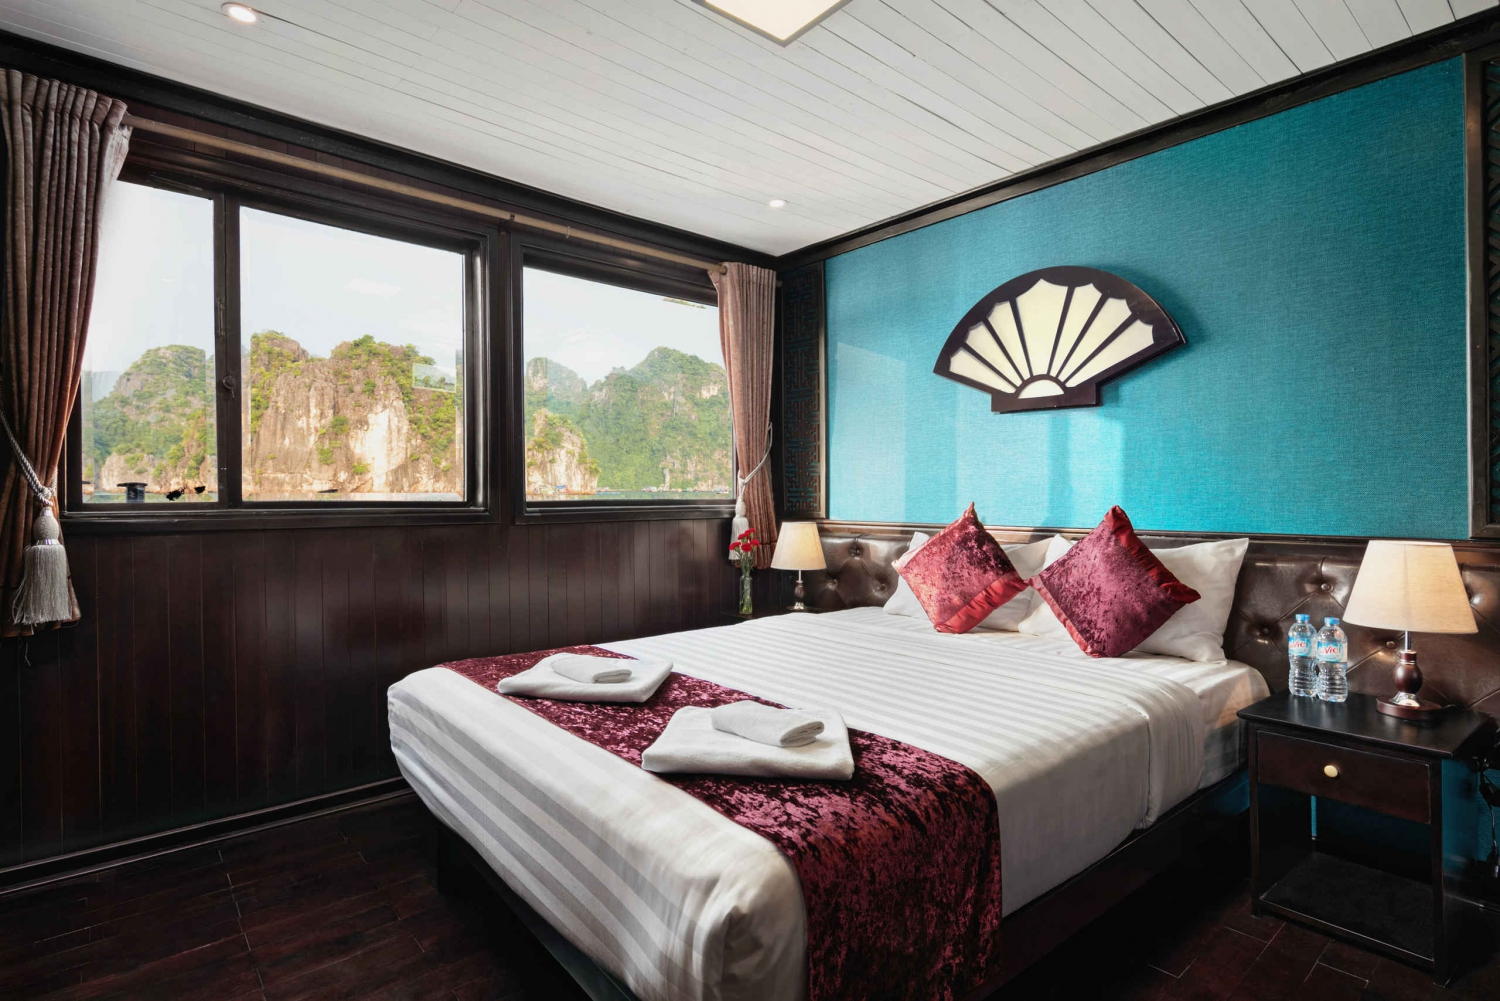 Halong Bay: 4-Star A-Class Legend Cruise 2 Days 1 Night